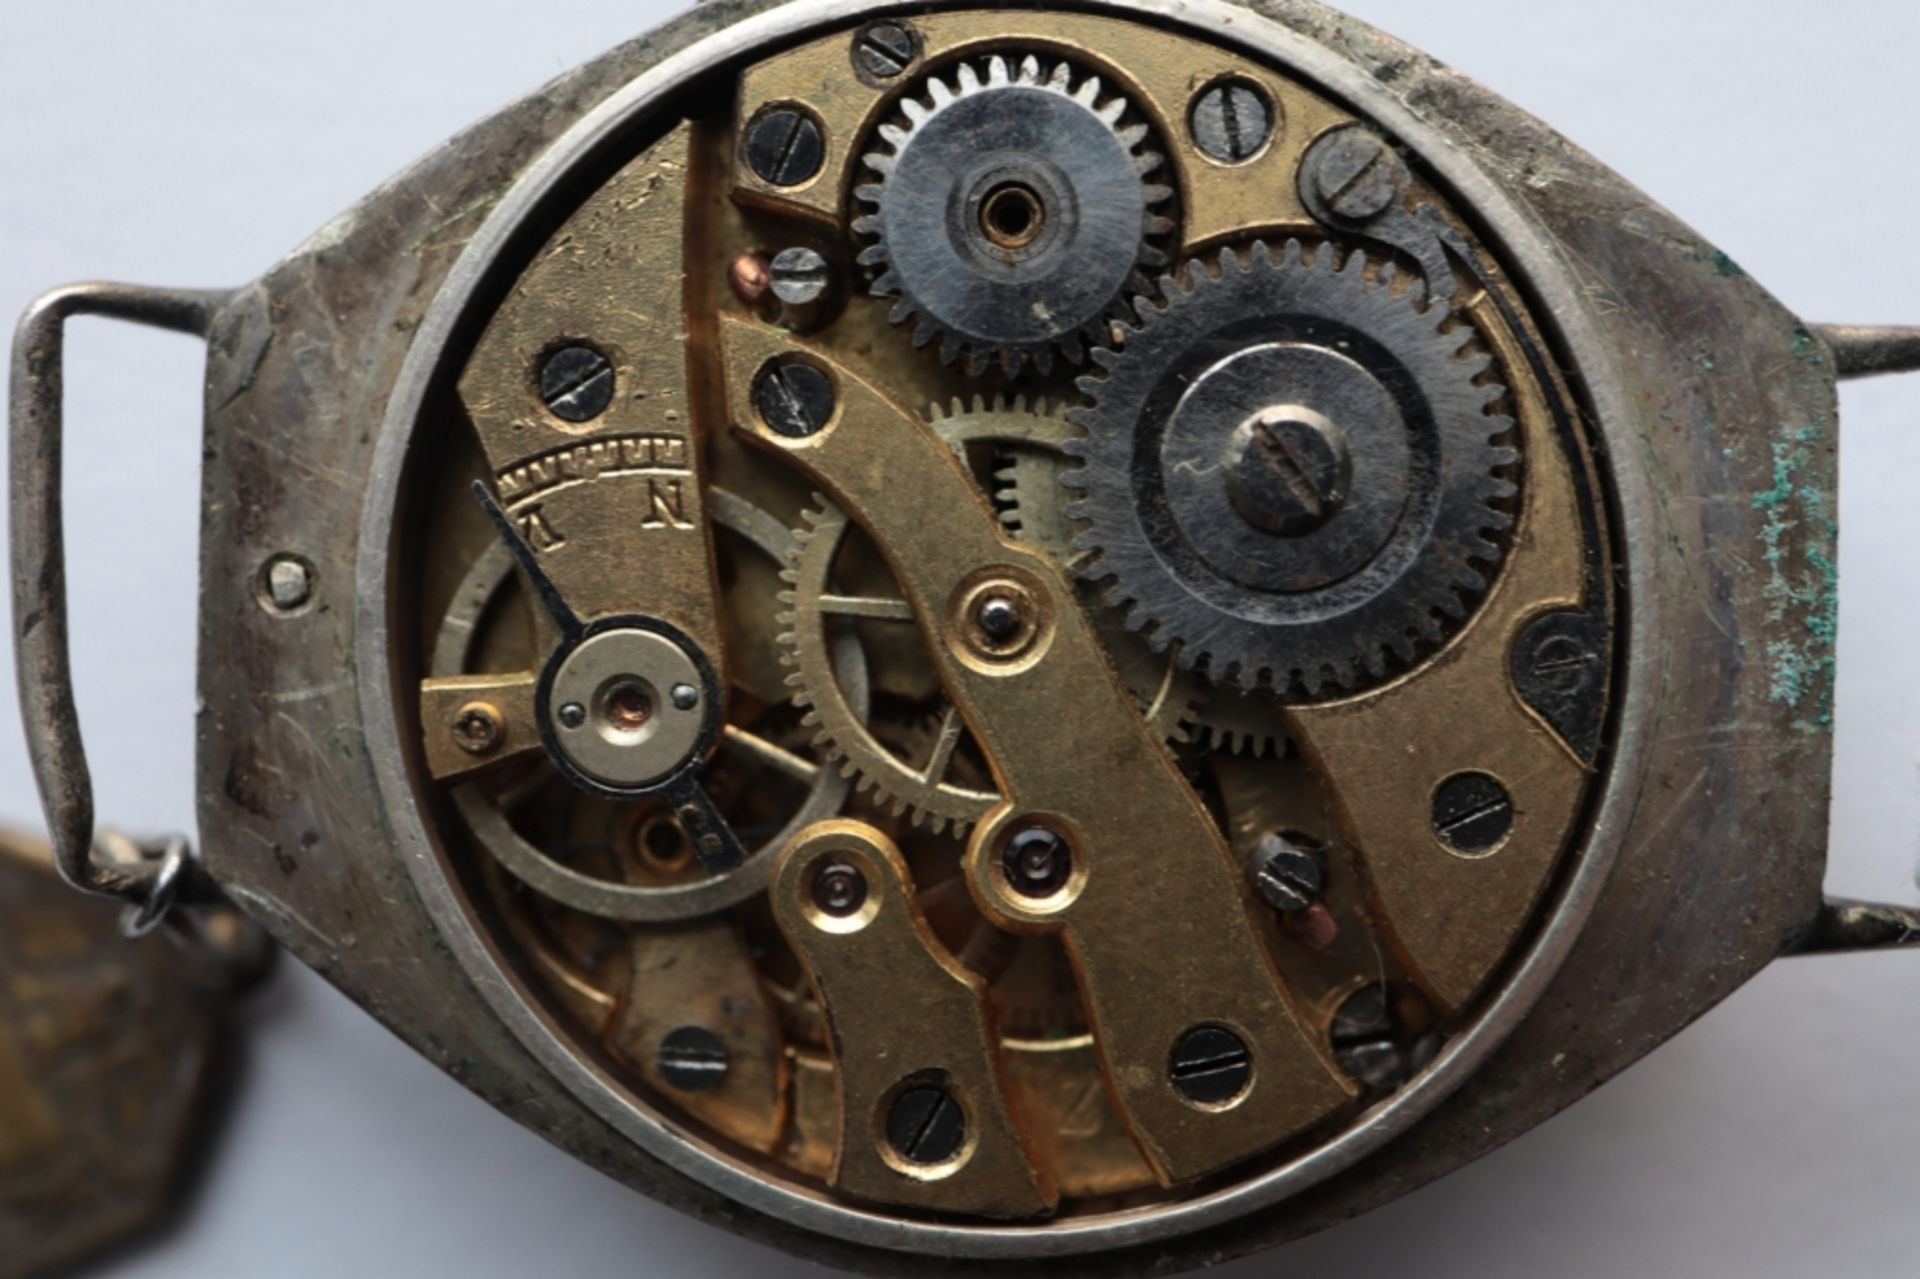 Lot of 6 watches including 4 pocket watches, a travel alarm clock and a wristwatch. - Image 3 of 7